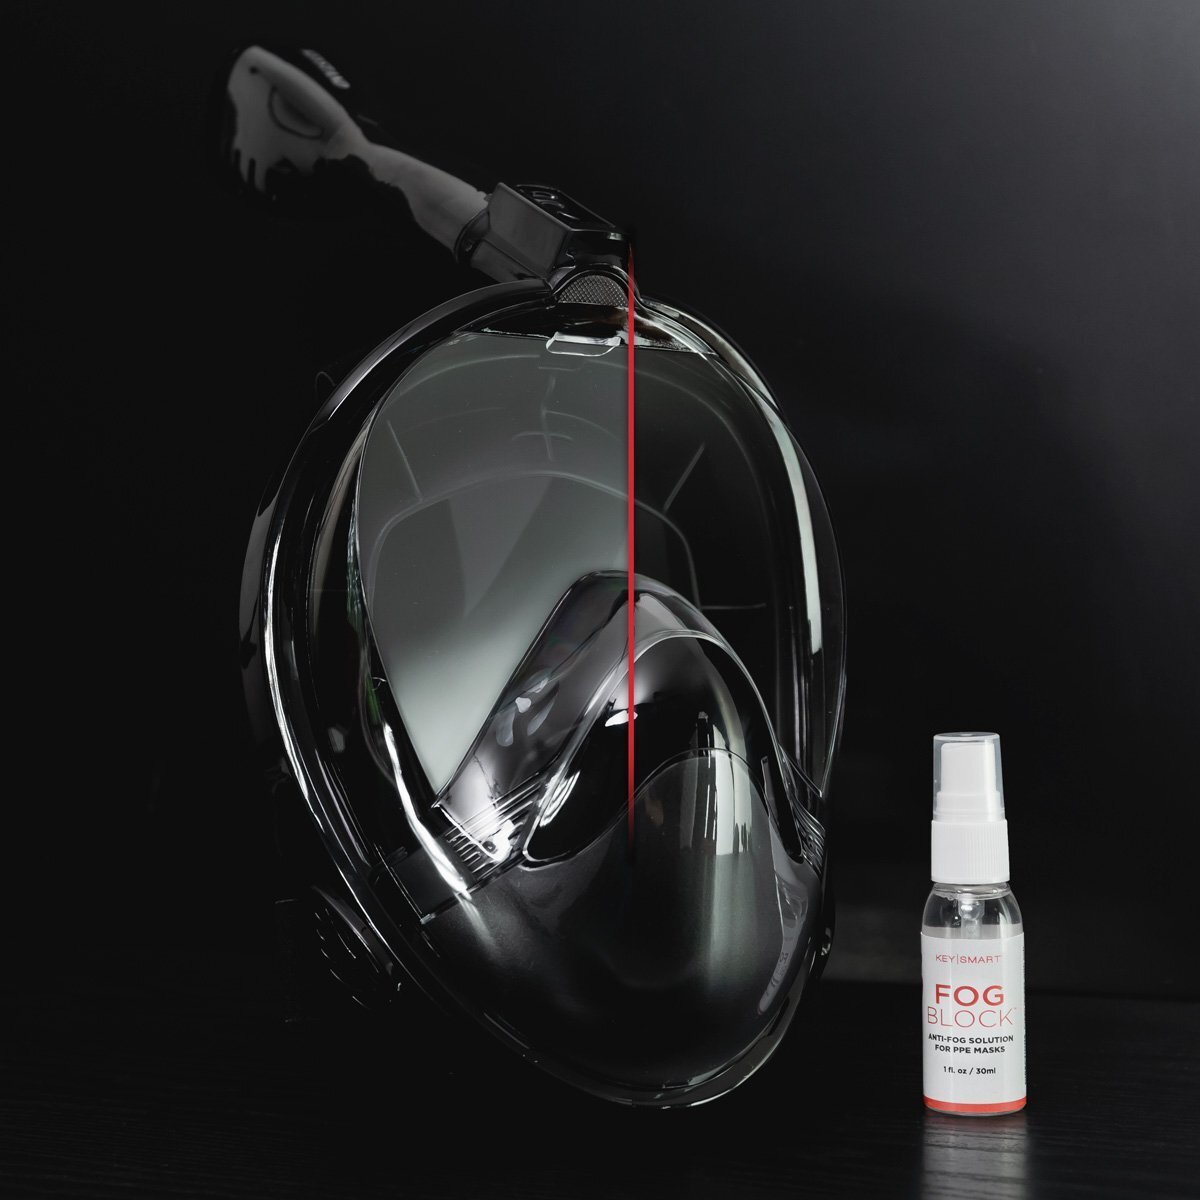 FogBlock spray keeps your glasses fog-free while wearing a face mask 17